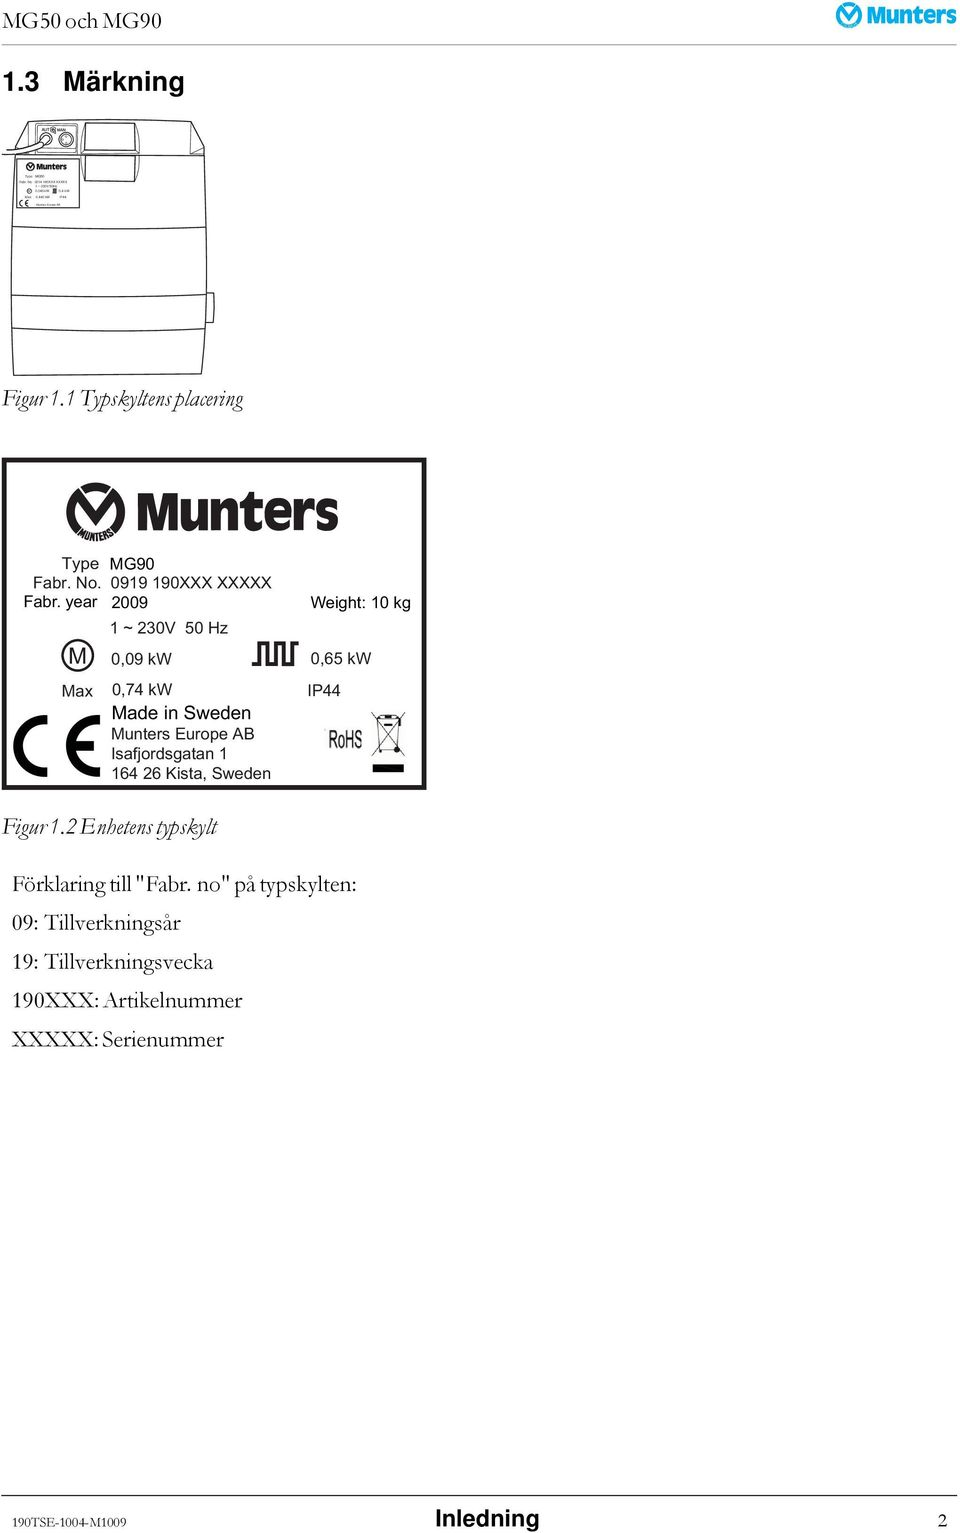 Munters Mg 90 Wiring Diagram -Land Rover County Wiring Diagram | Begeboy Wiring  Diagram Source | Munters Mg 90 Wiring Diagram |  | Begeboy Wiring Diagram Source